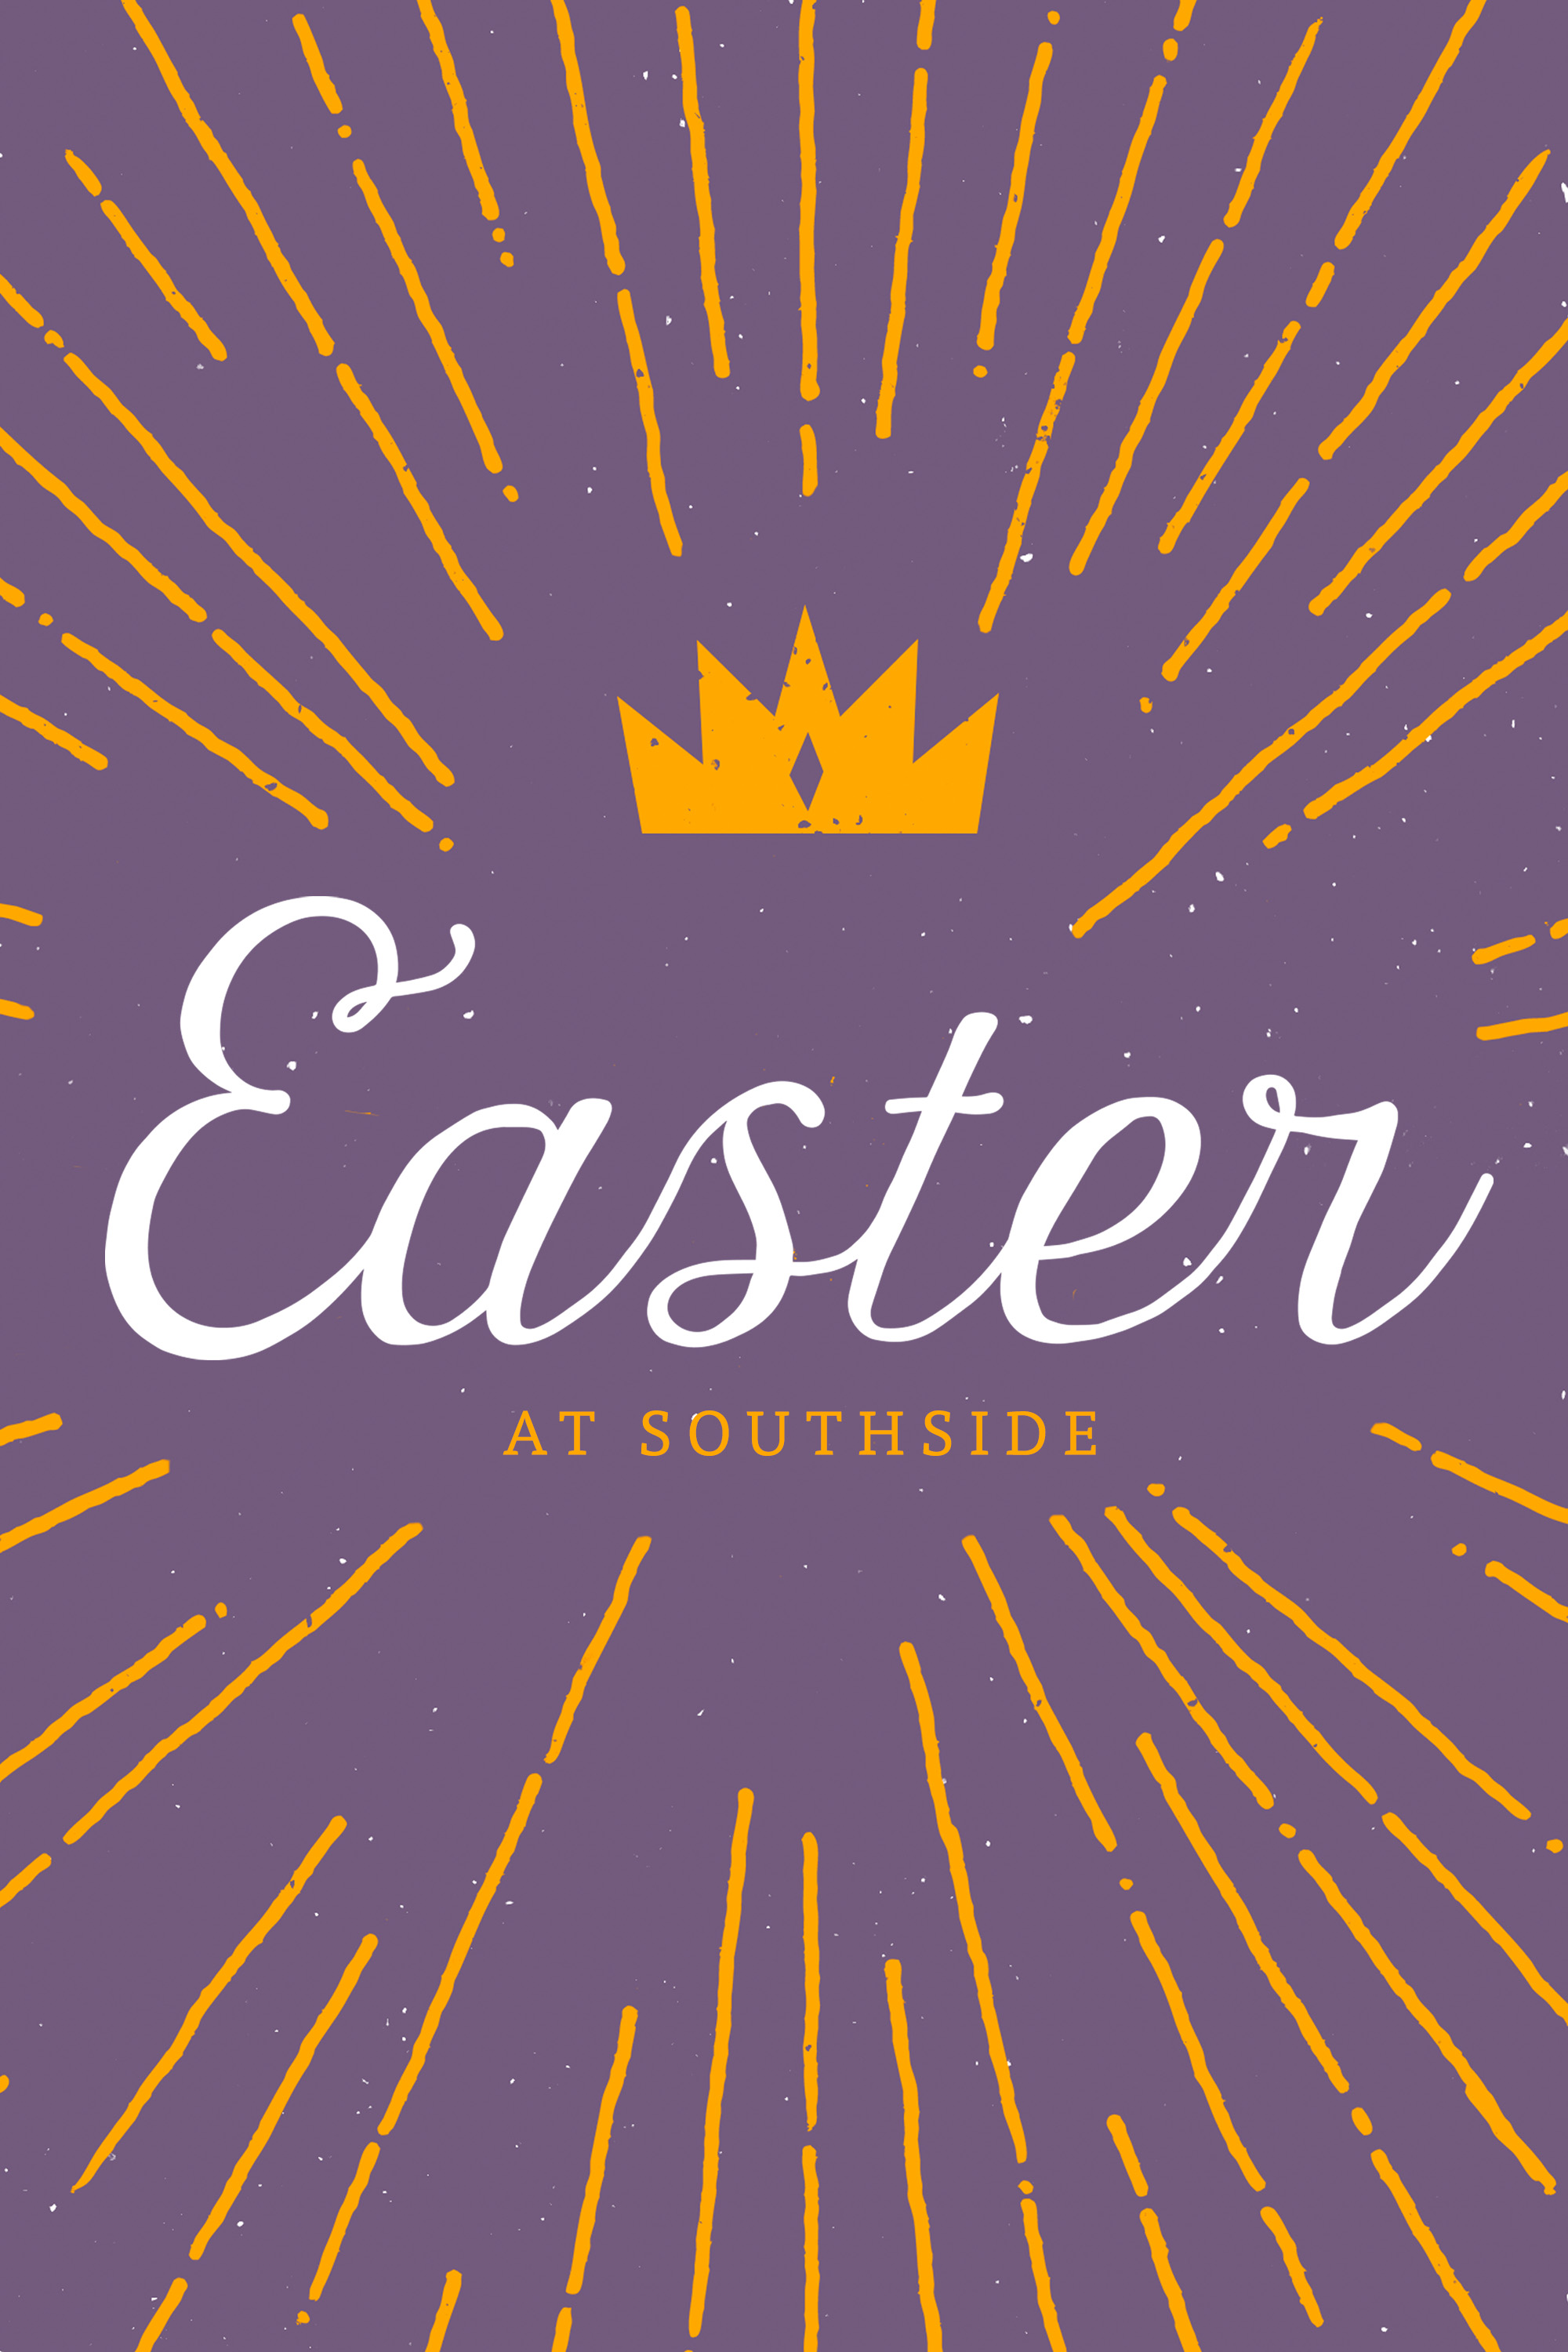 Schedule of Events - Friday April 19th - Good Friday // Good Friday Service - Jesus' Last 7 Words on The Cross - Journey Church - 6:30pmSaturday April 20th // Easter Egg Hunt - 10:00am - 12:00pmSunday April 21st - Easter Sunday // 7:00am - Sunrise Service on the Lawn8:00am - Breakfast (in fellowship hall)9:00am - Sunday School10:15am - Worship ServiceNO EVENING SERVICE